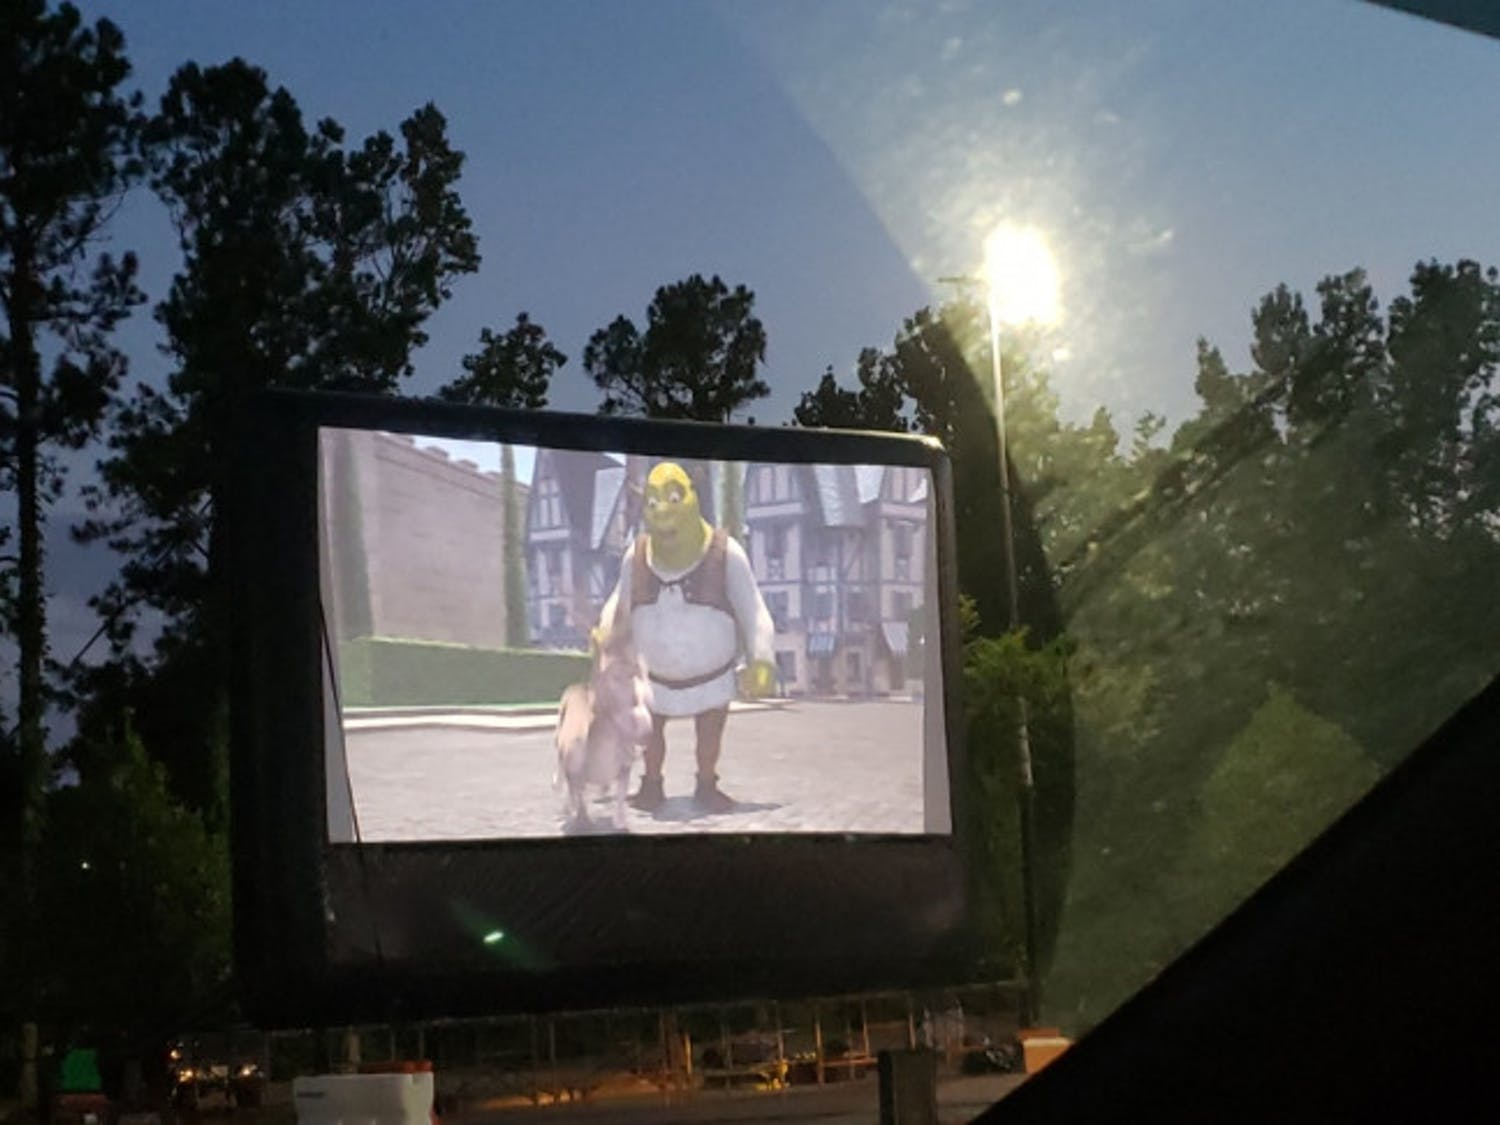 The Oaks Mall is hosting three family-friendly drive-in movie nights in cooperation with Glory Days Presents! and Drive-in Dudes.